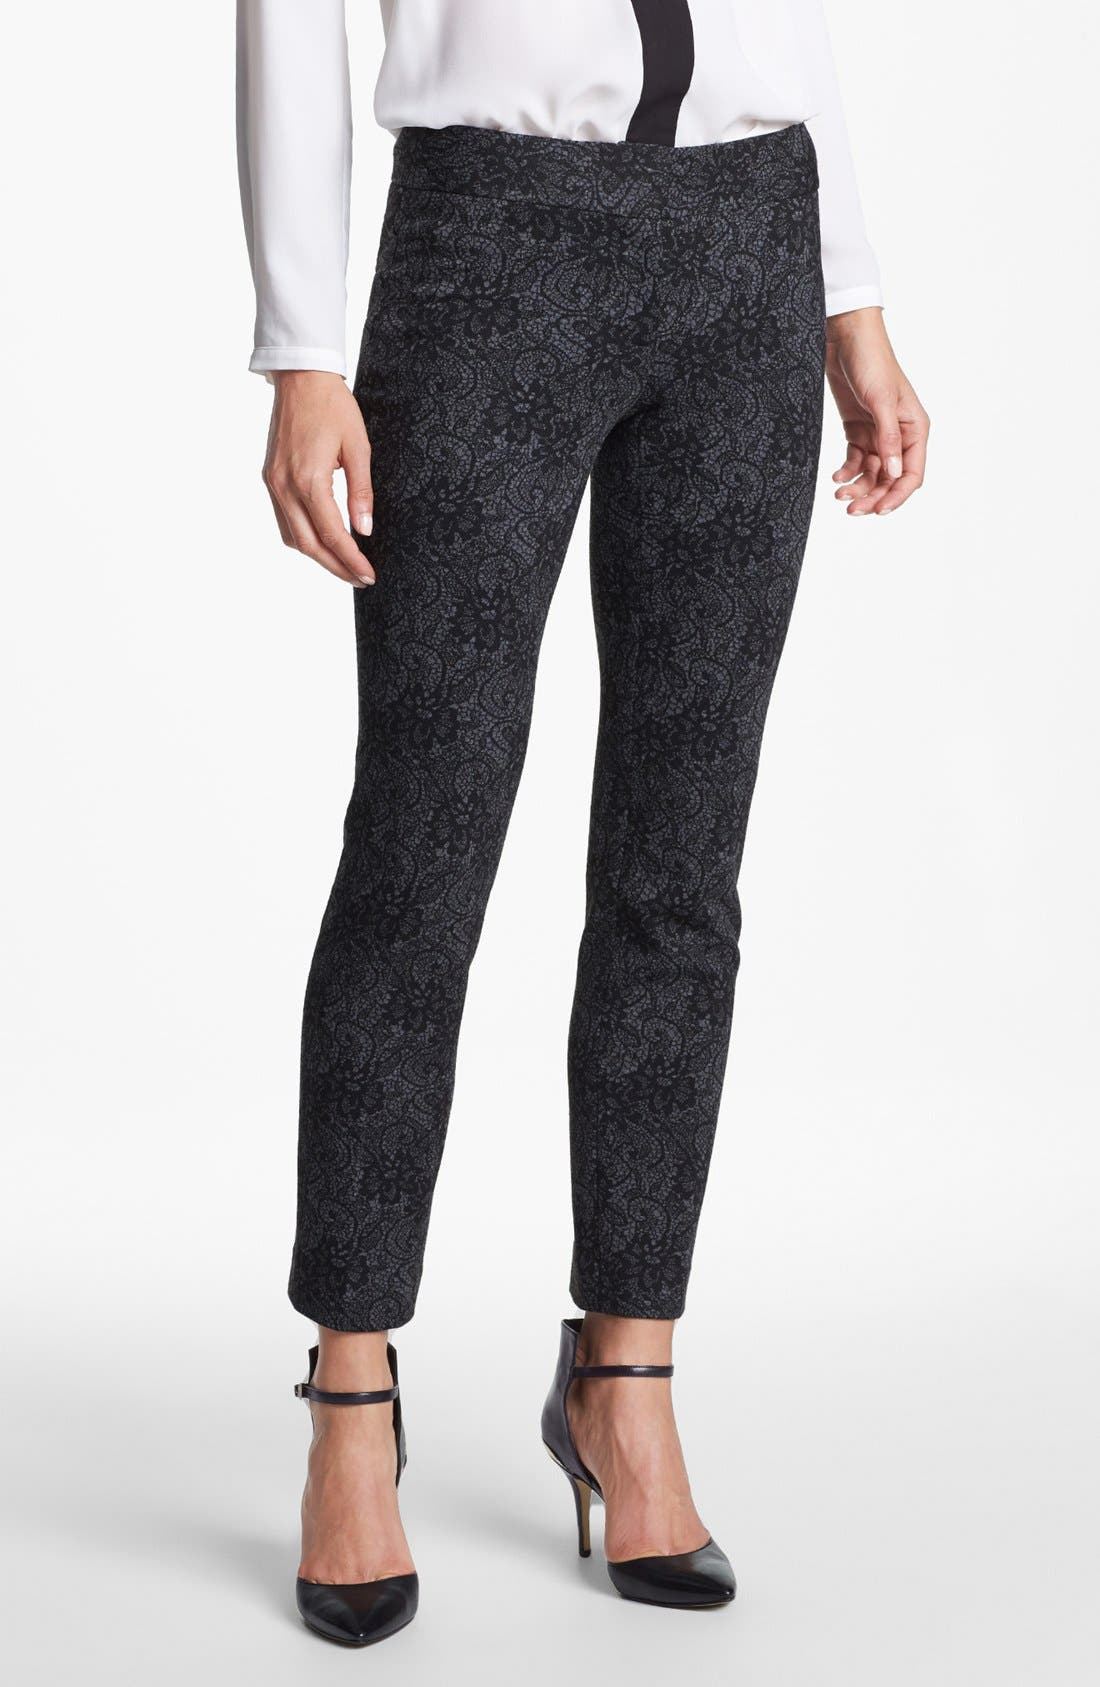 Alternate Image 1 Selected - Vince Camuto Lace Print Ponte Ankle Pants (Petite)